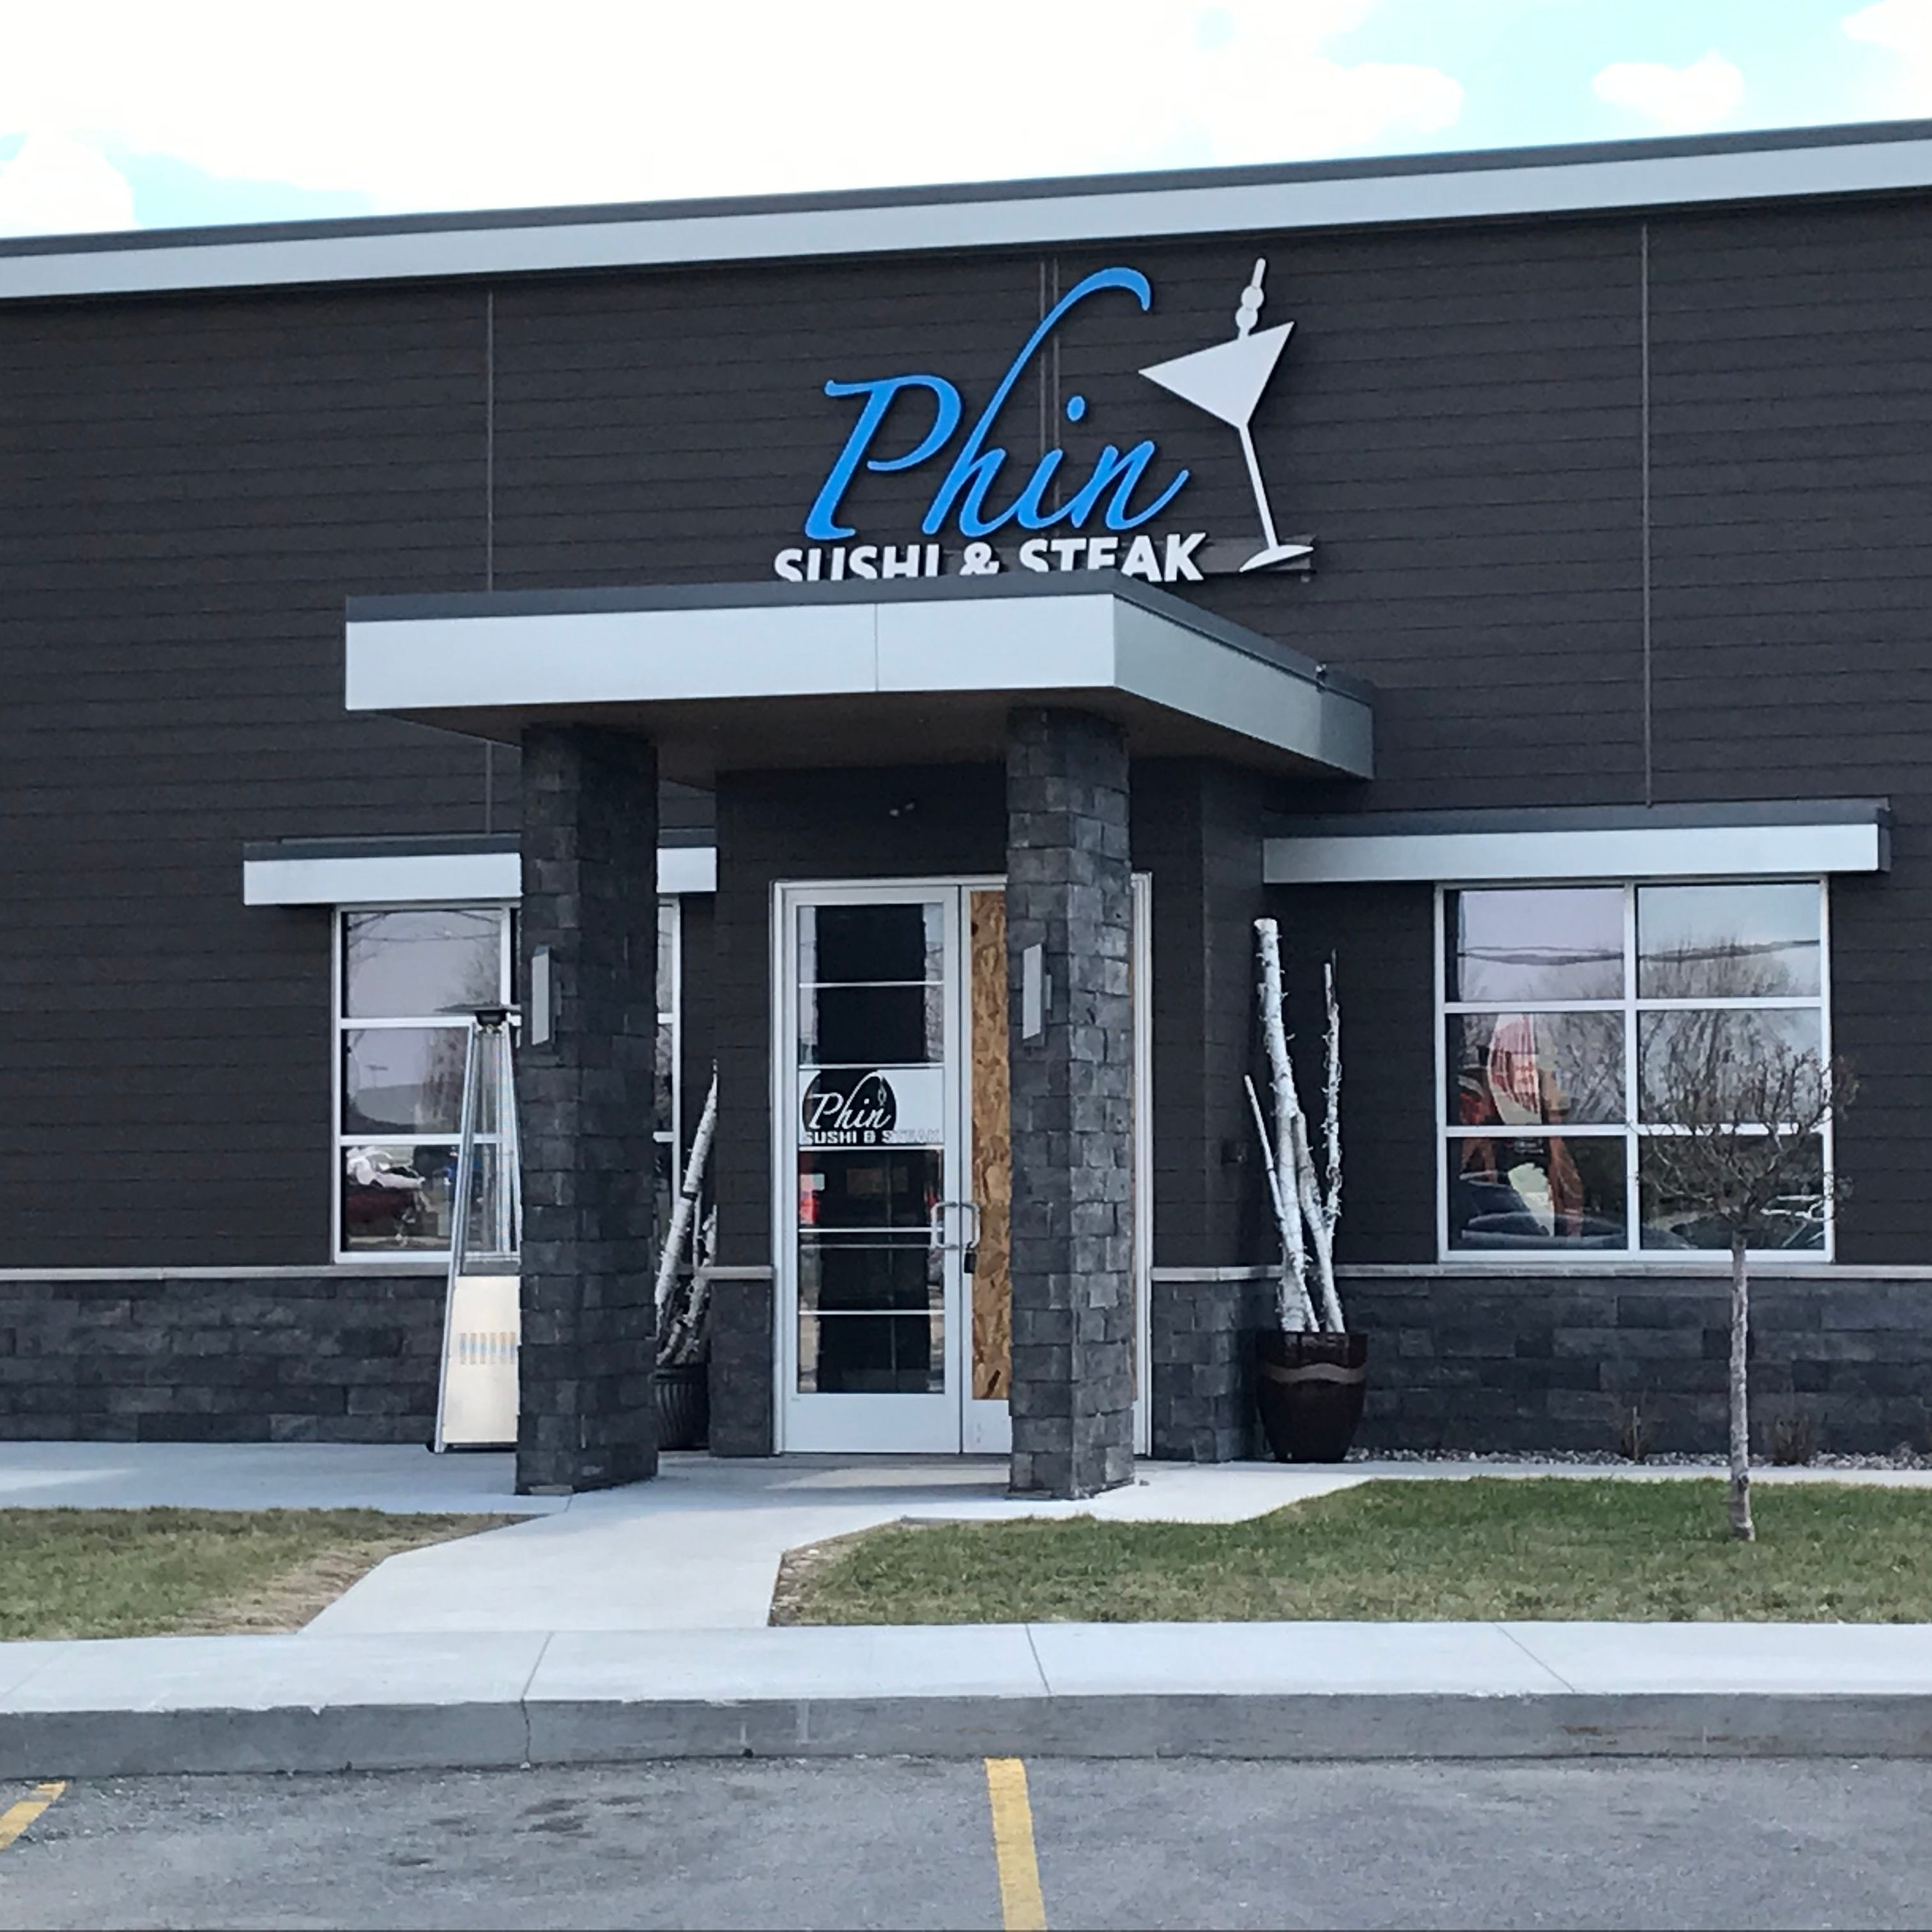 Streetwise: Phin Sushi unlikely to re-open; restaurant shut down after Jan. 4 fire